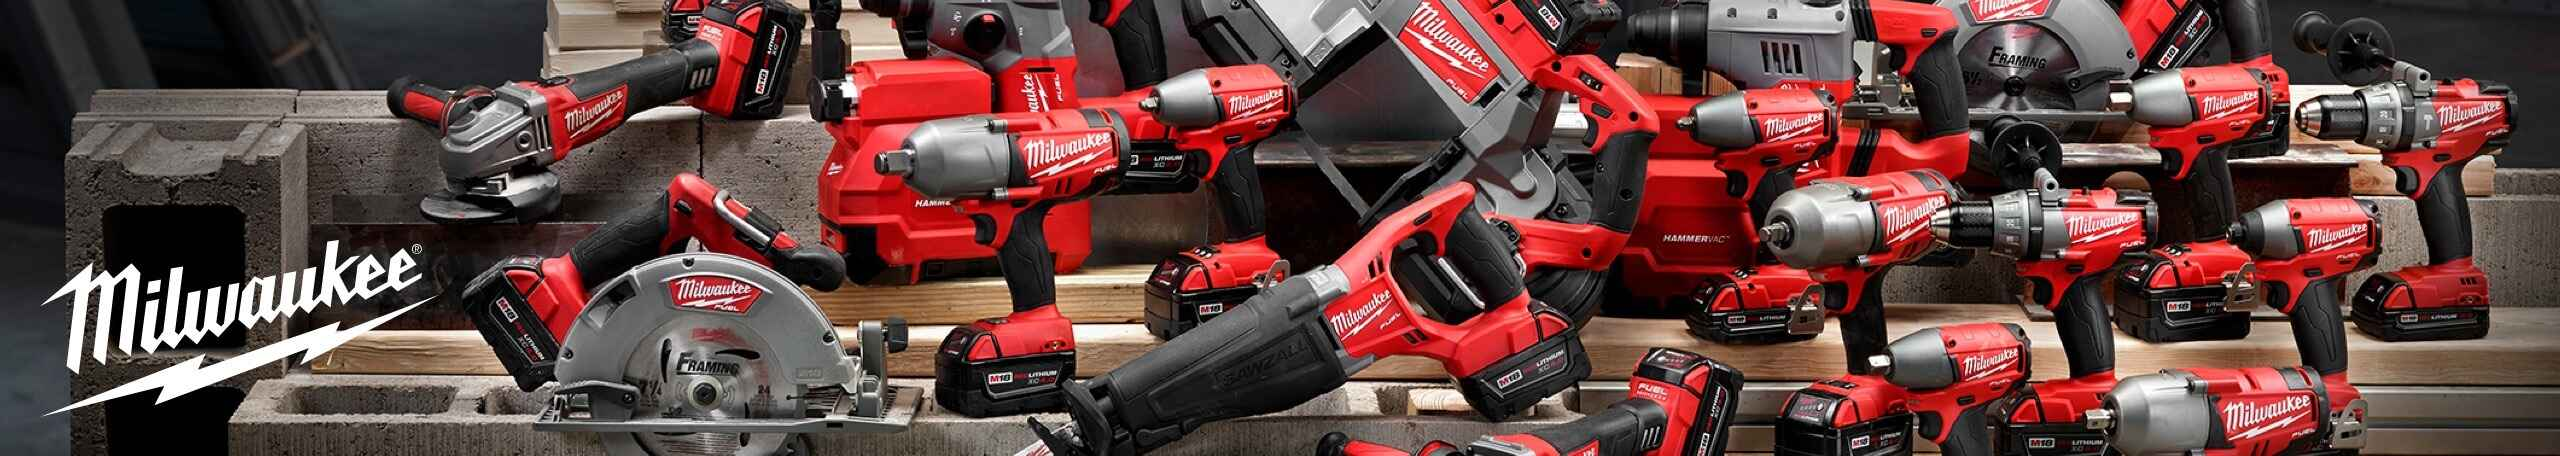 More about Milwaukee power tools at Niehaus Lumber